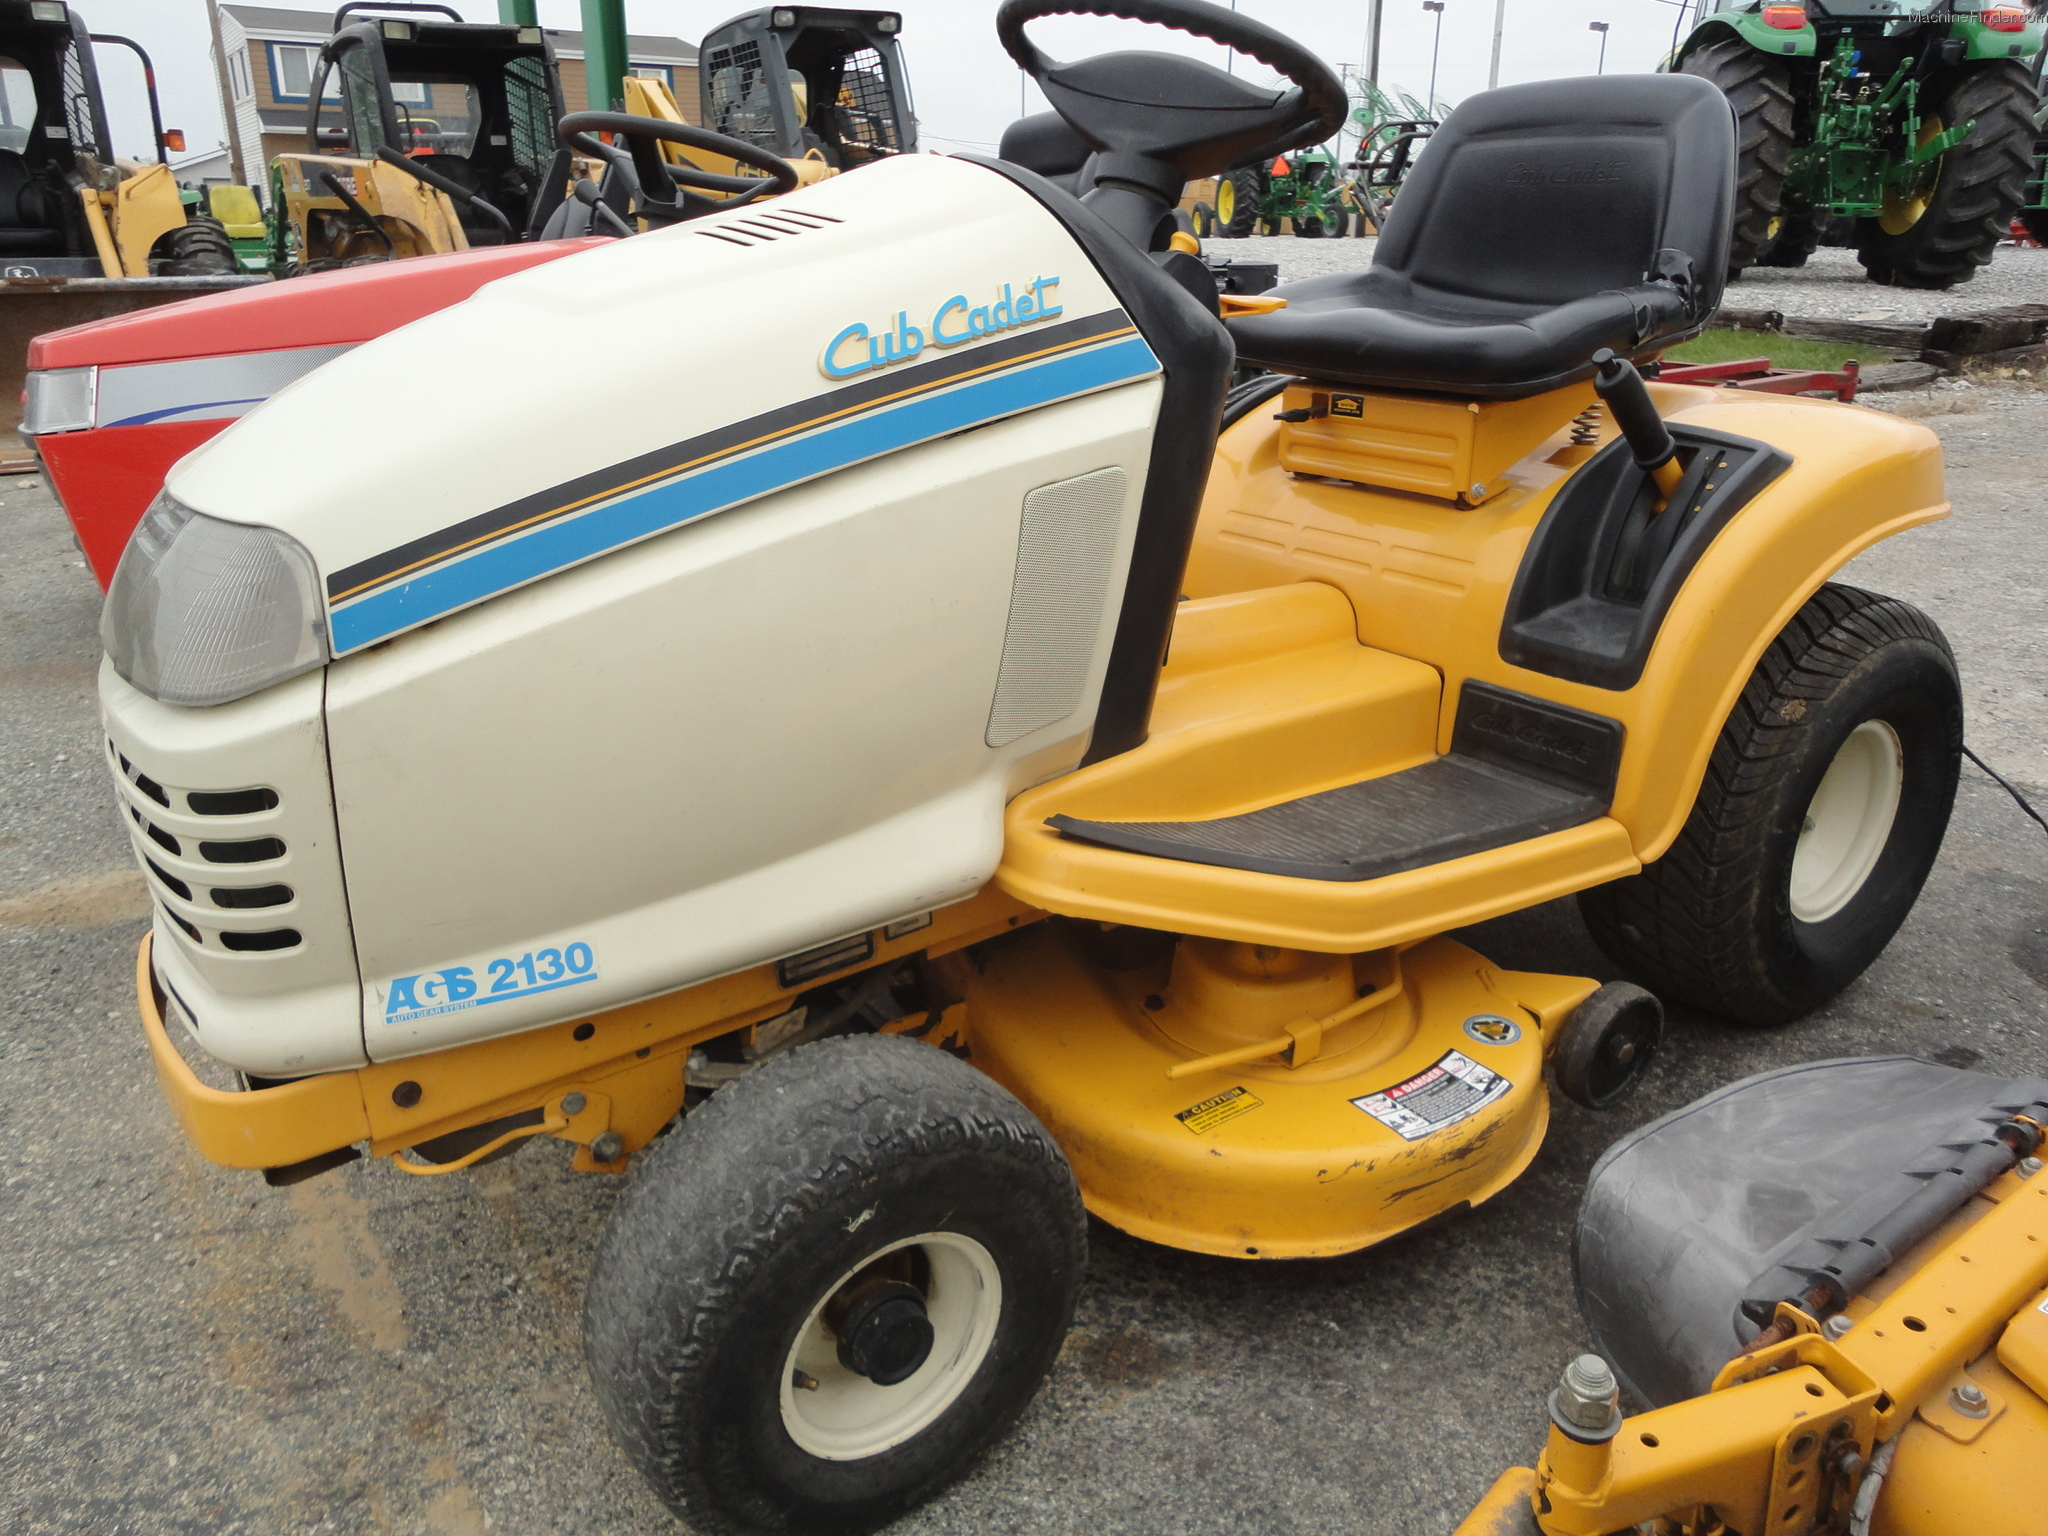 Cub Cadet Lawn Mowers Dealers : Cub cadet lawn garden and commercial mowing john